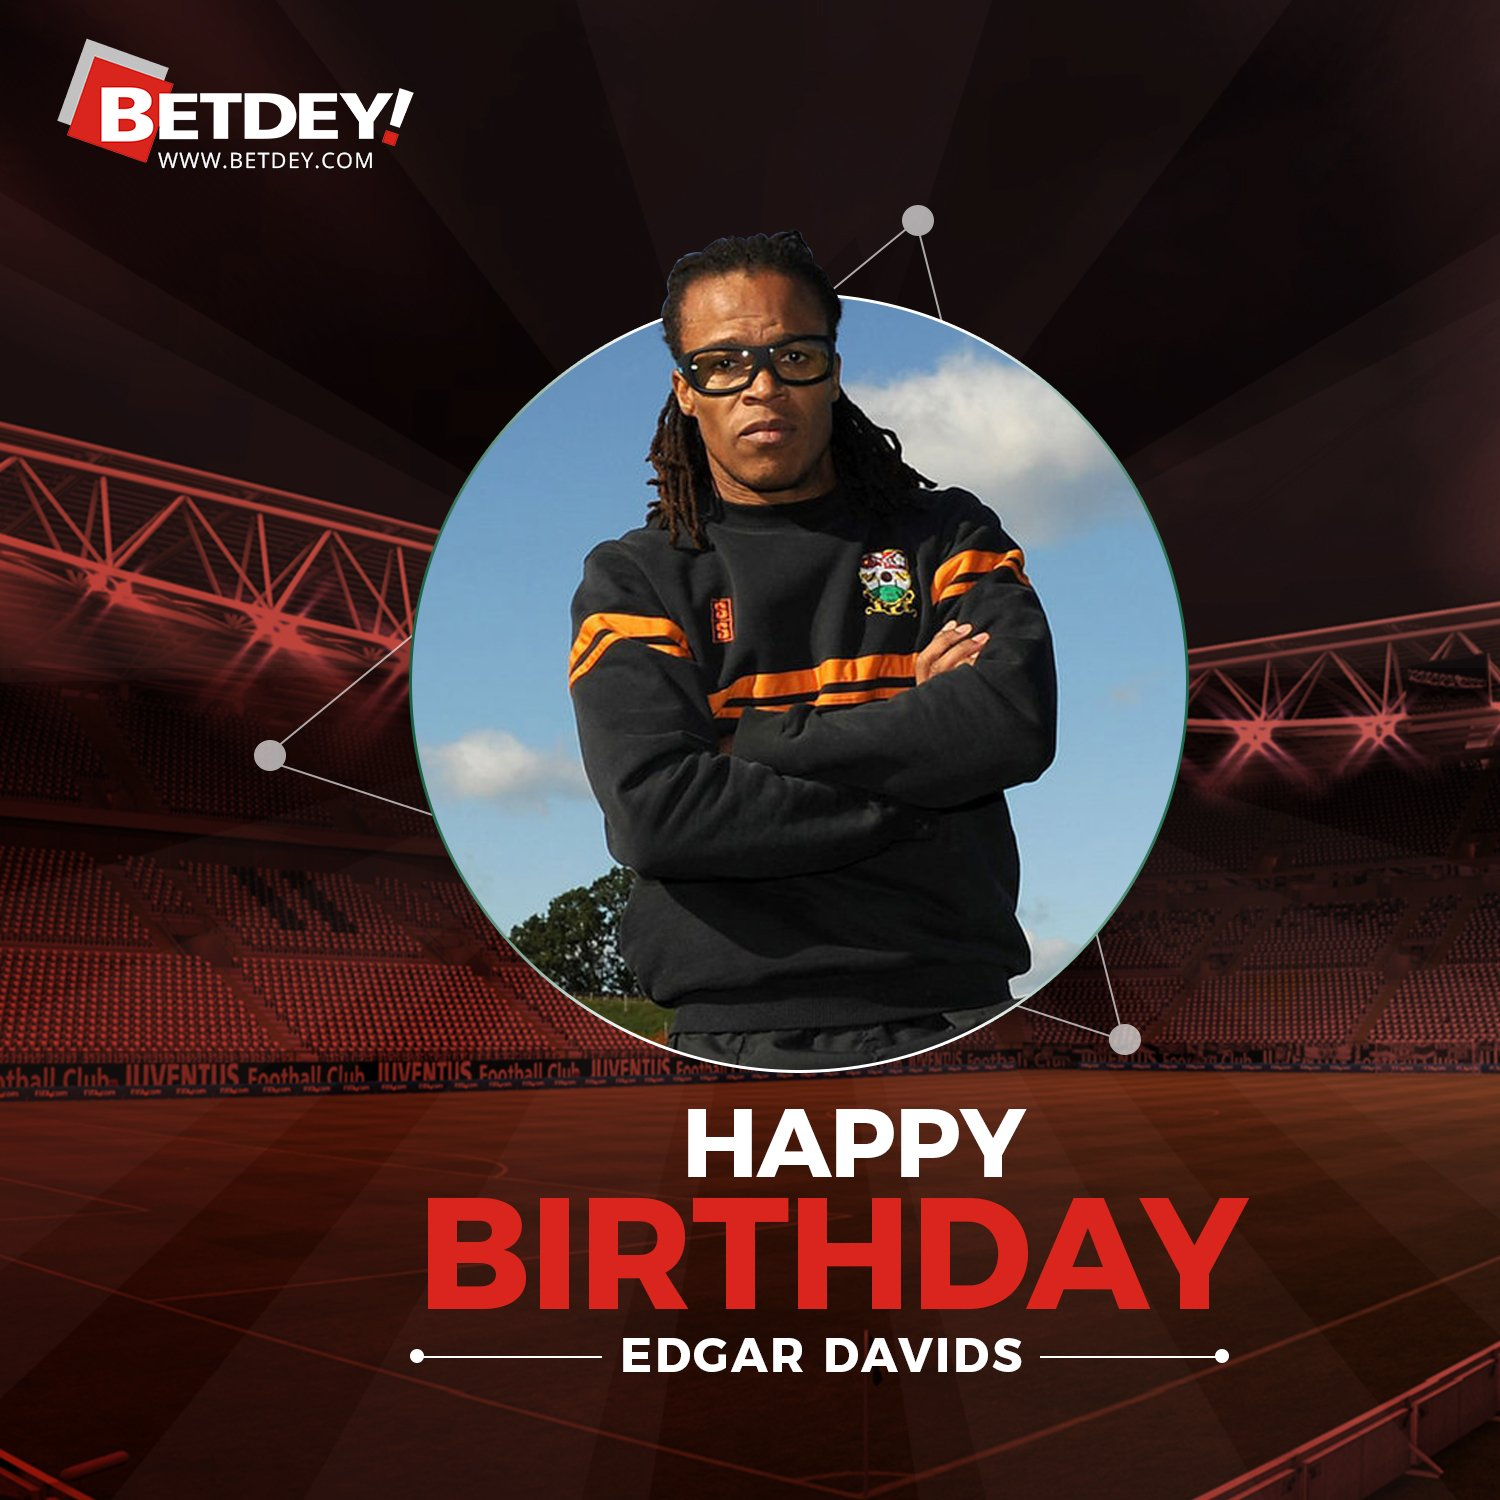 Happy birthday, Edgar Davids